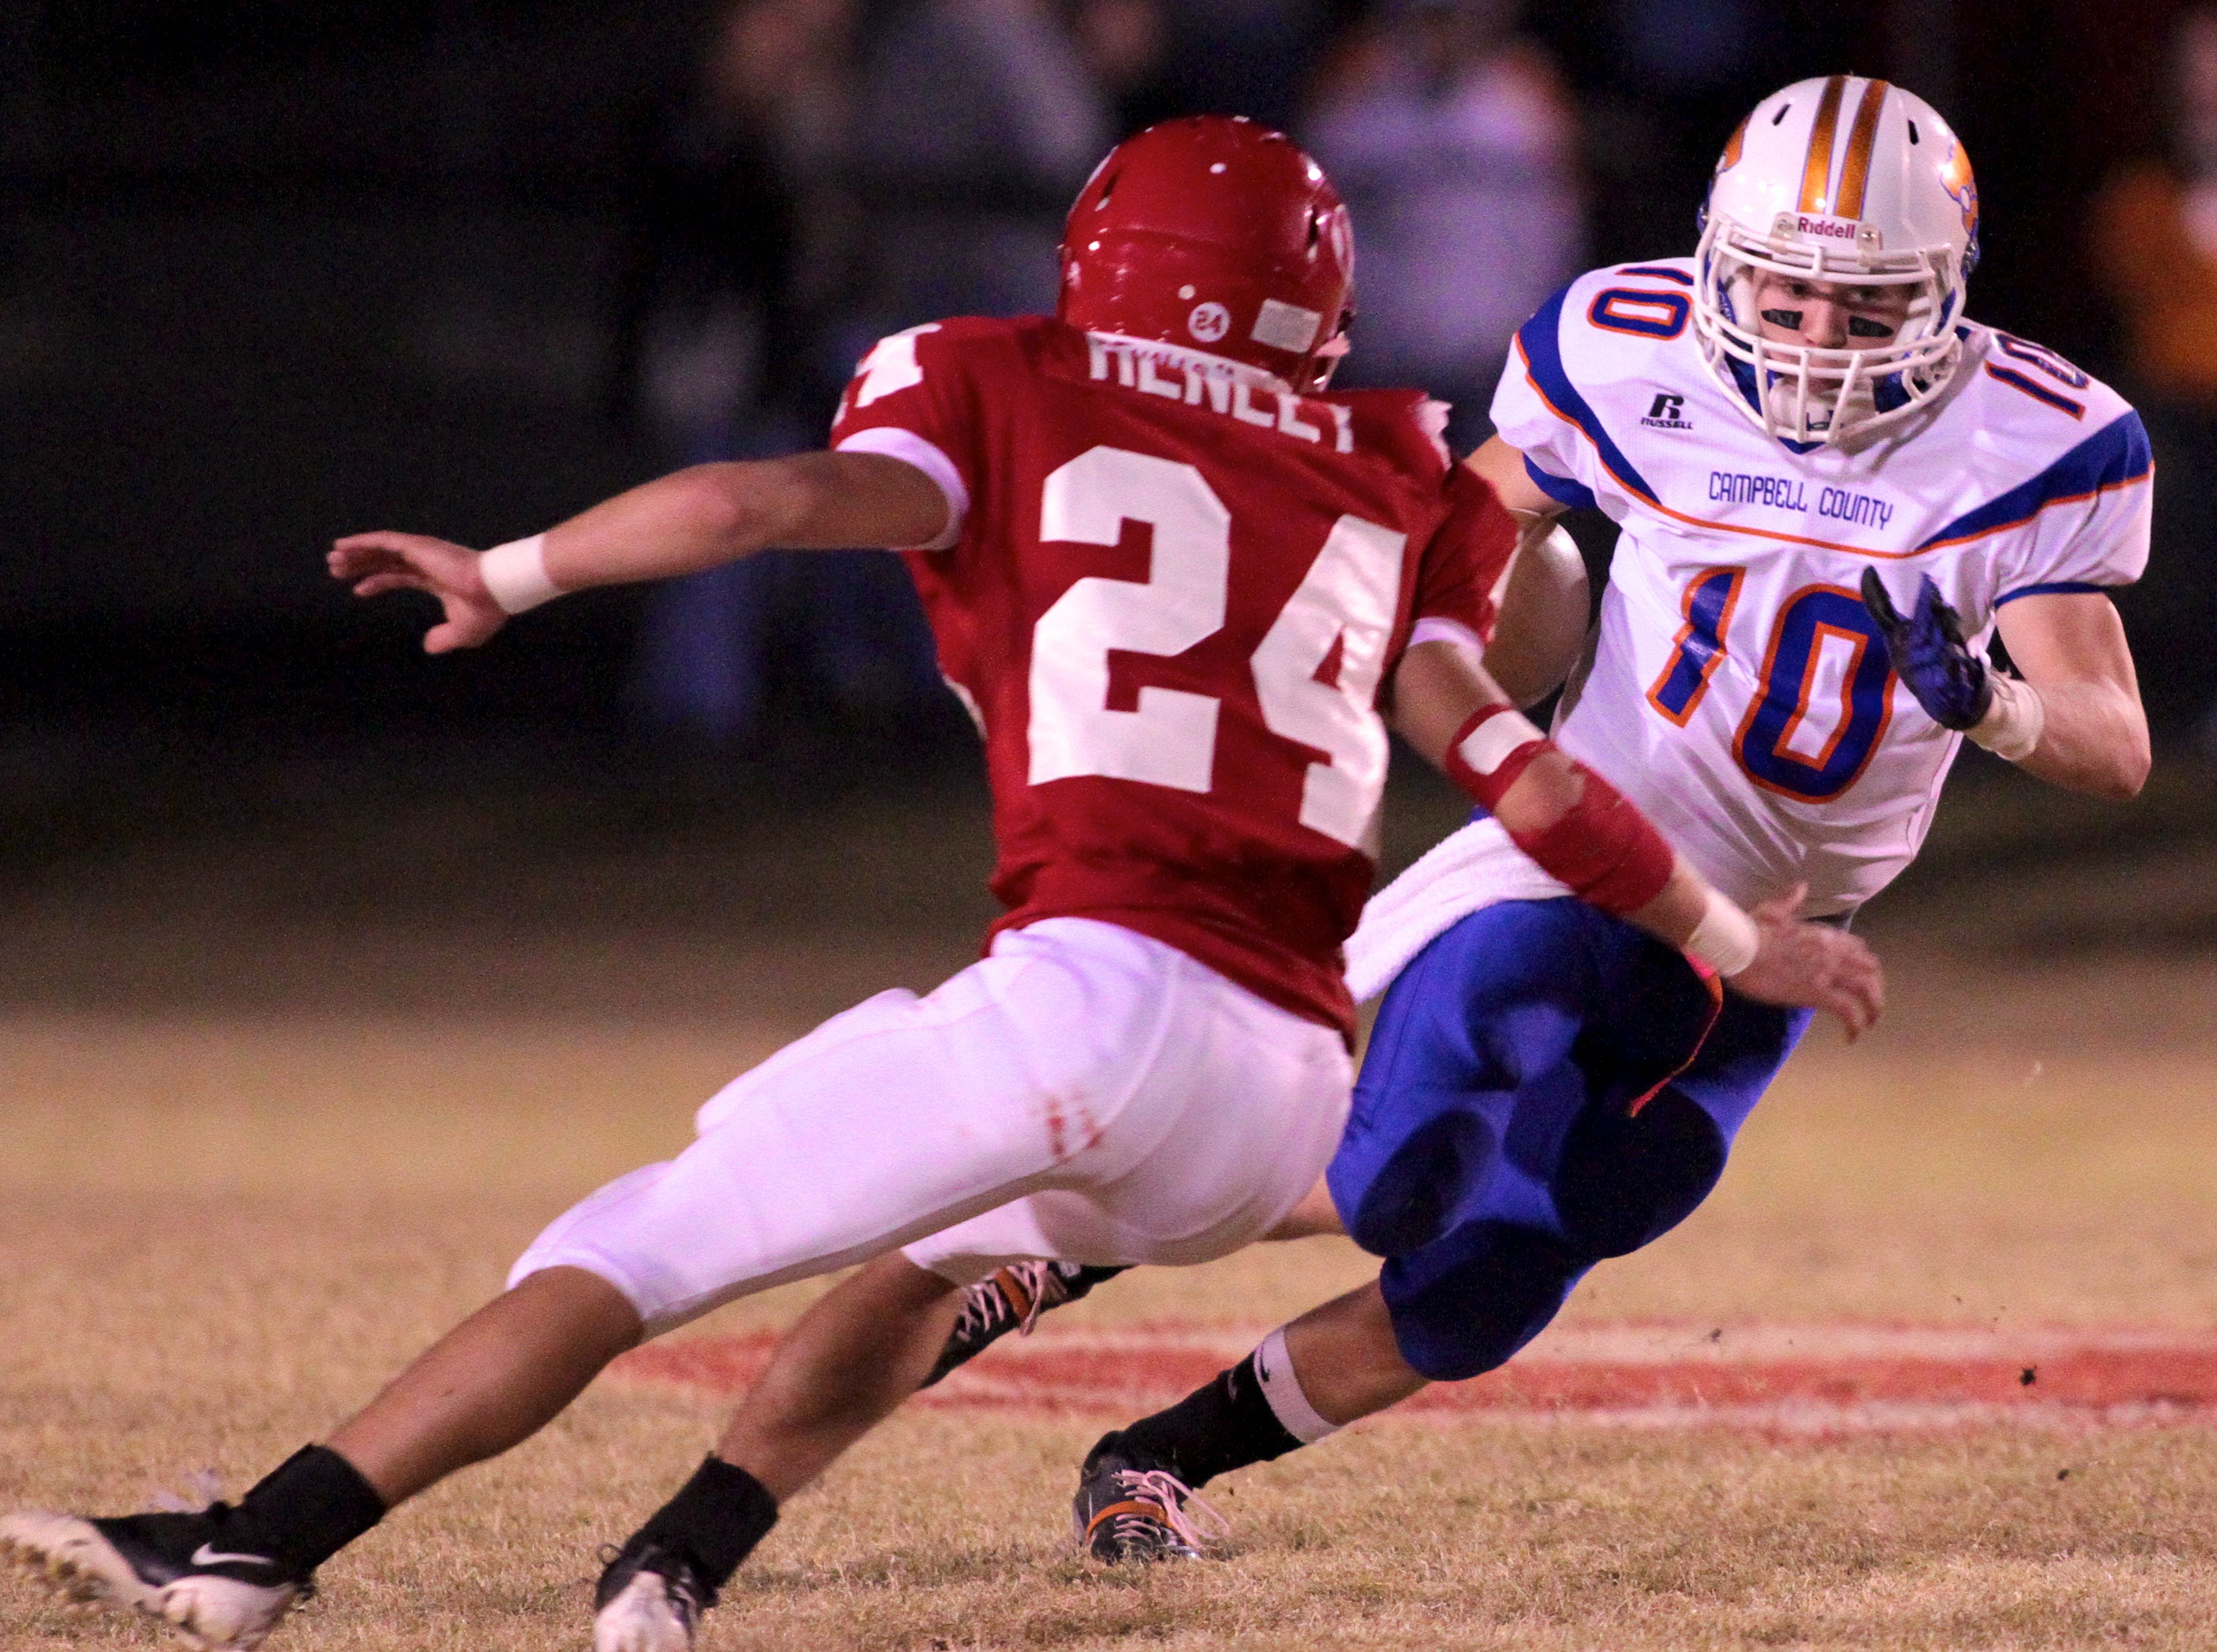 Halls' Donovan Henley, left, tries to stop Campbell County's Anthony Branam on Friday, October 22, 2010 at Halls High School.